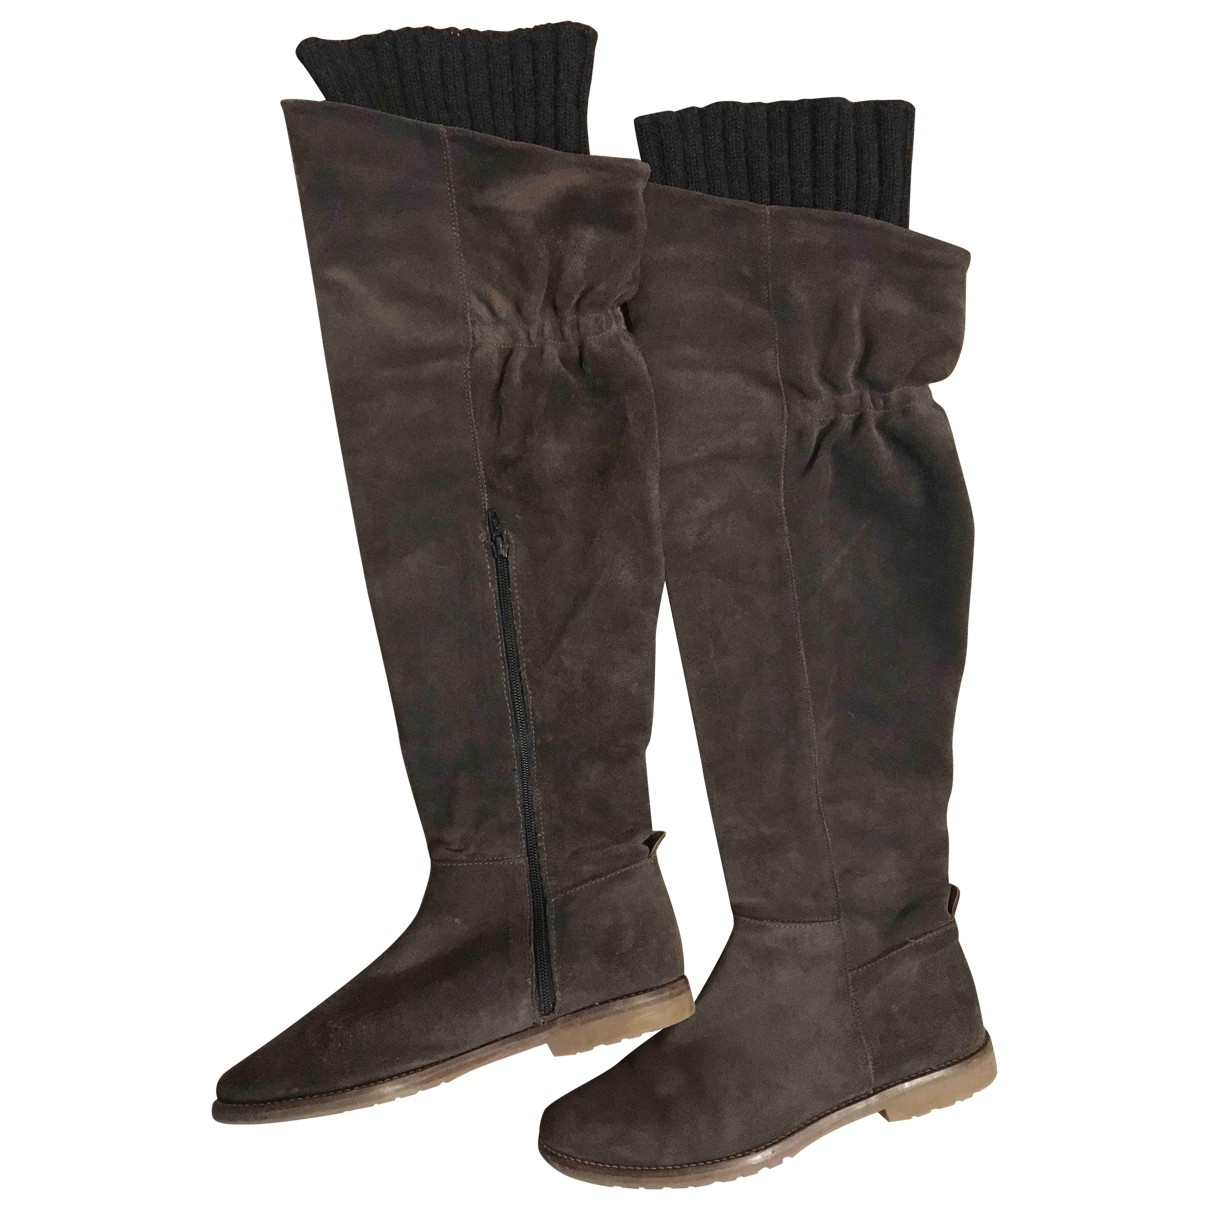 Tommy Hilfiger \N Green Leather Boots for Women 40 EU